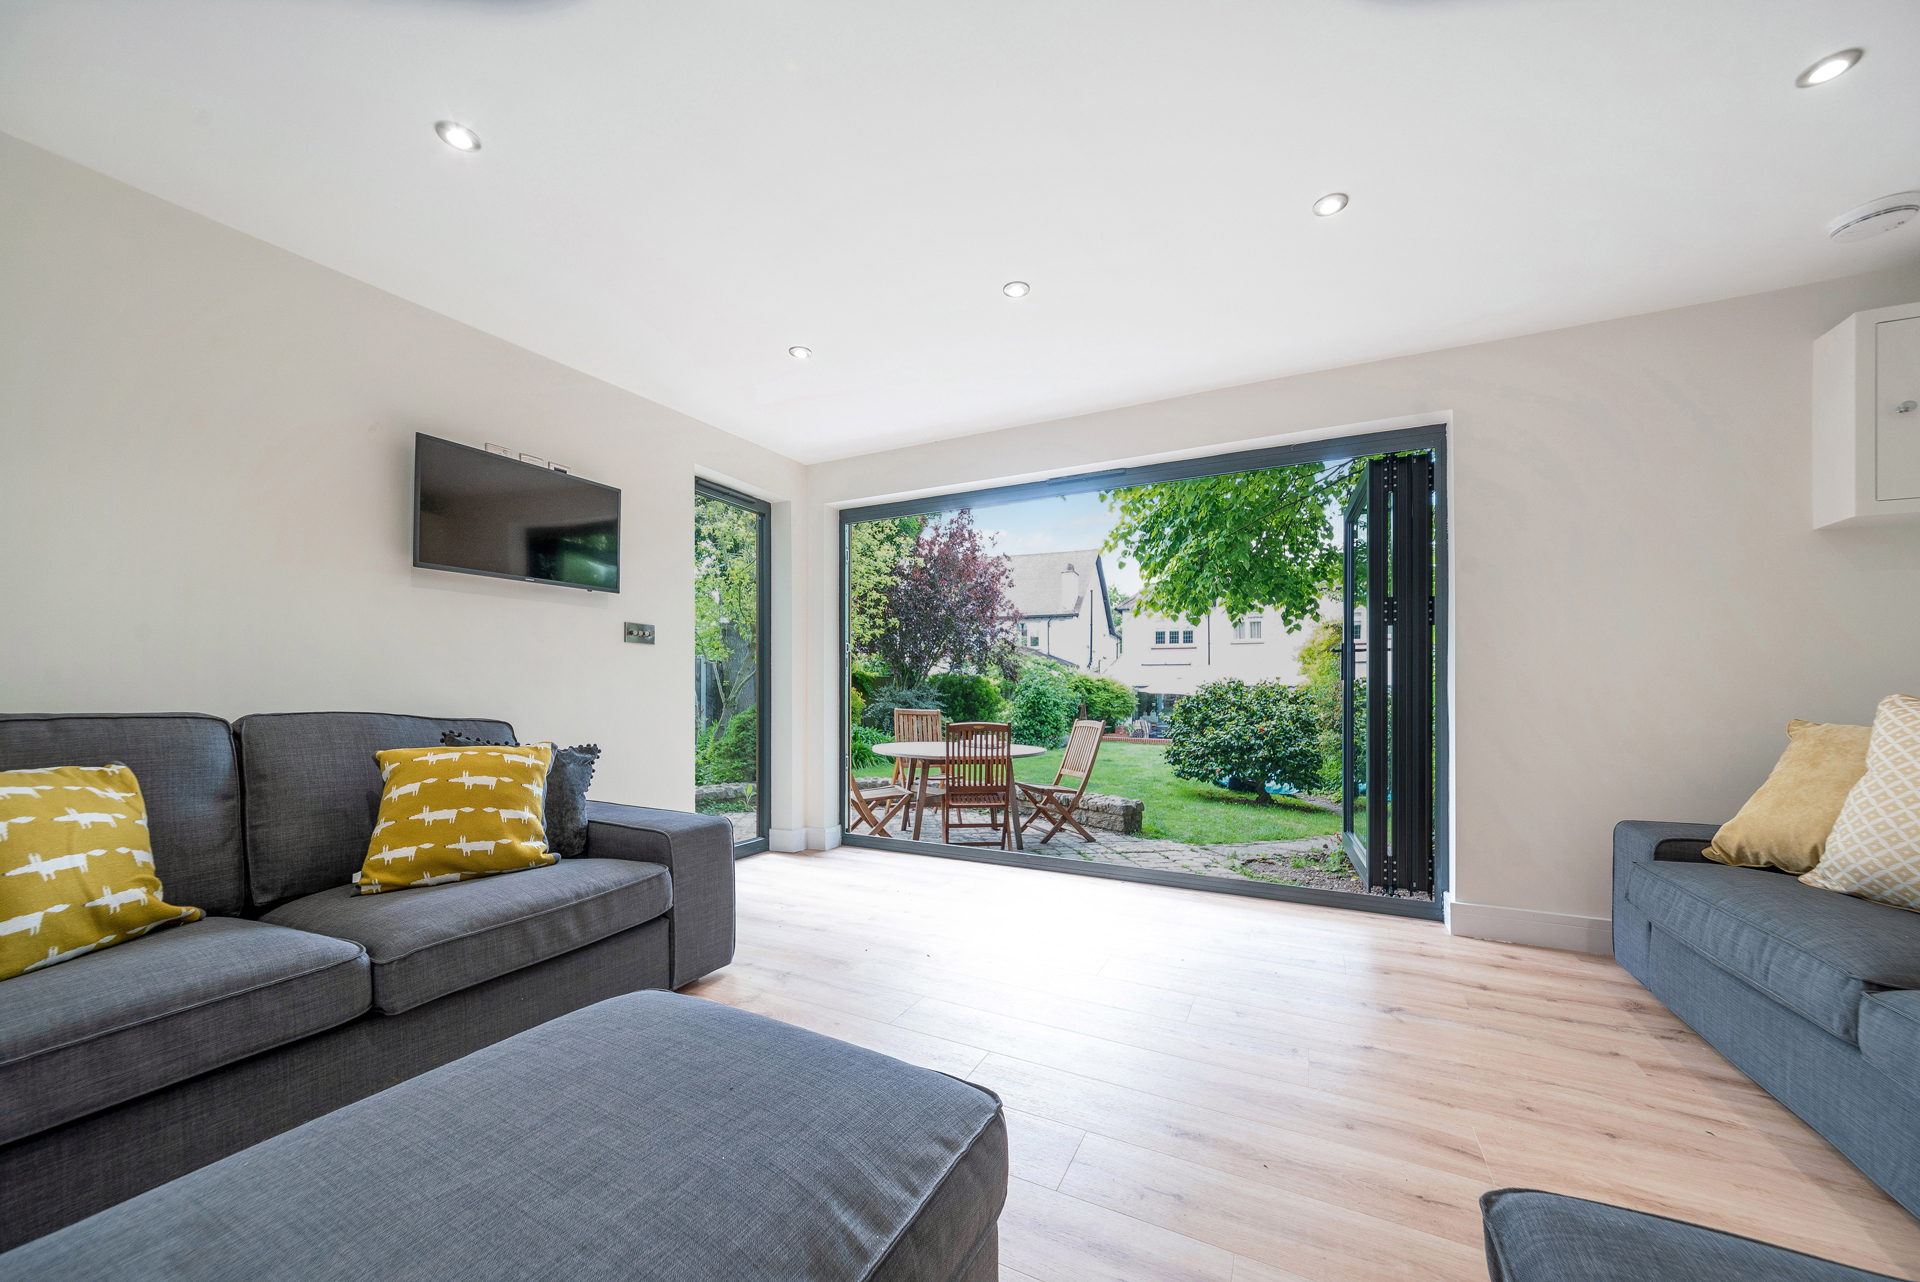 luxury garden room for games and relaxation